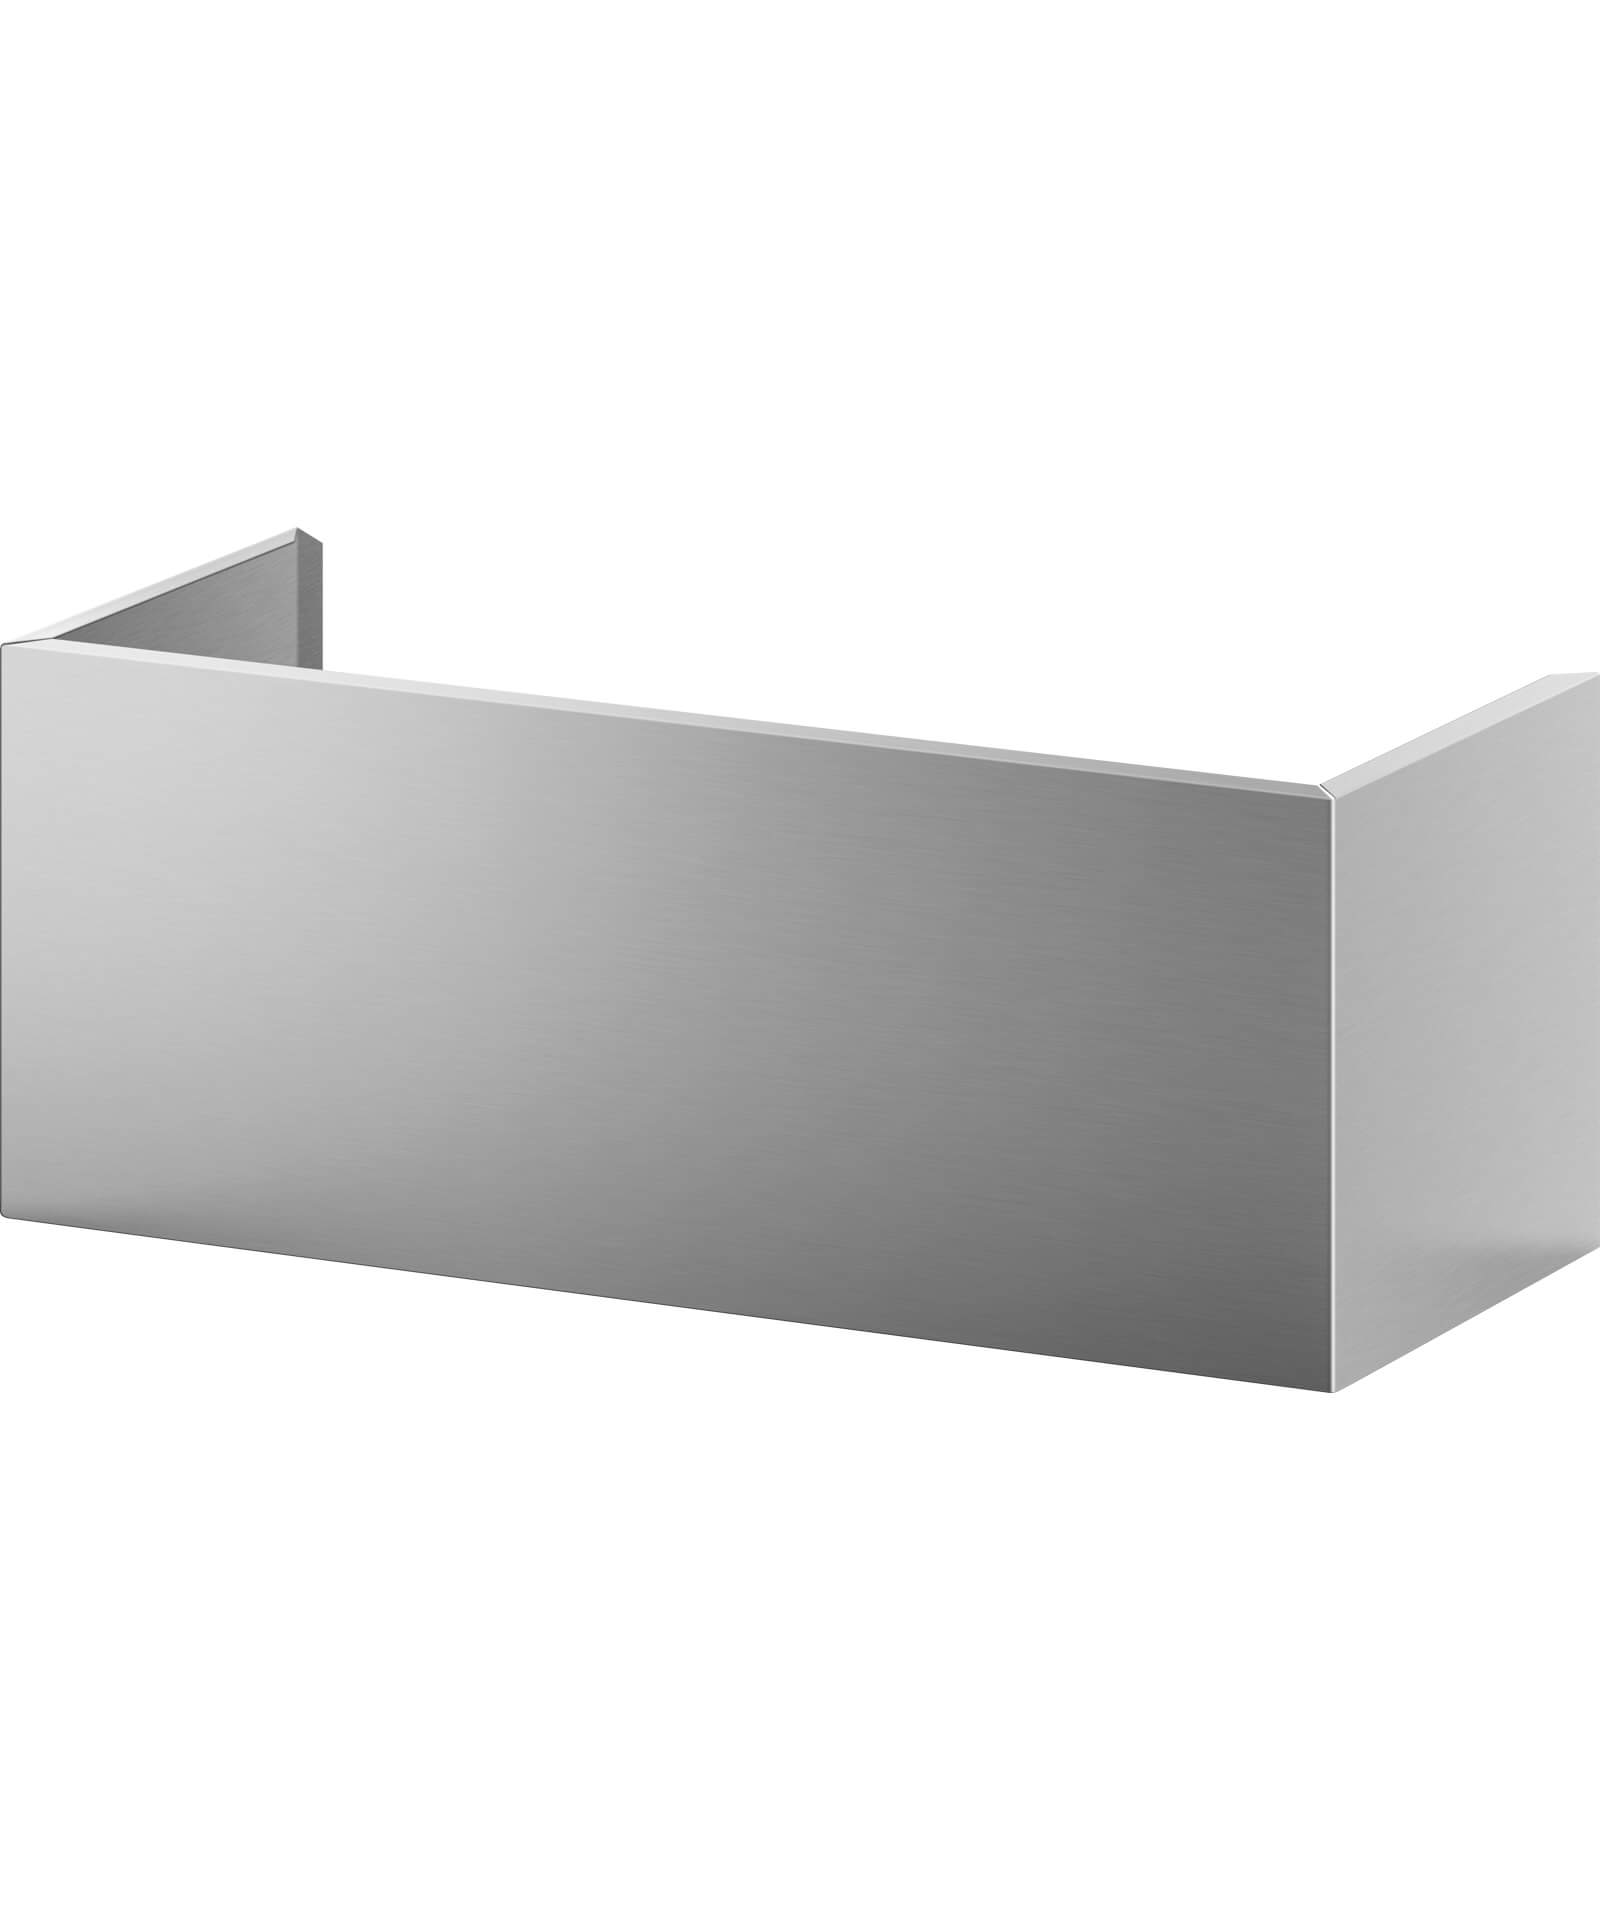 Duct Cover Accessory, 30